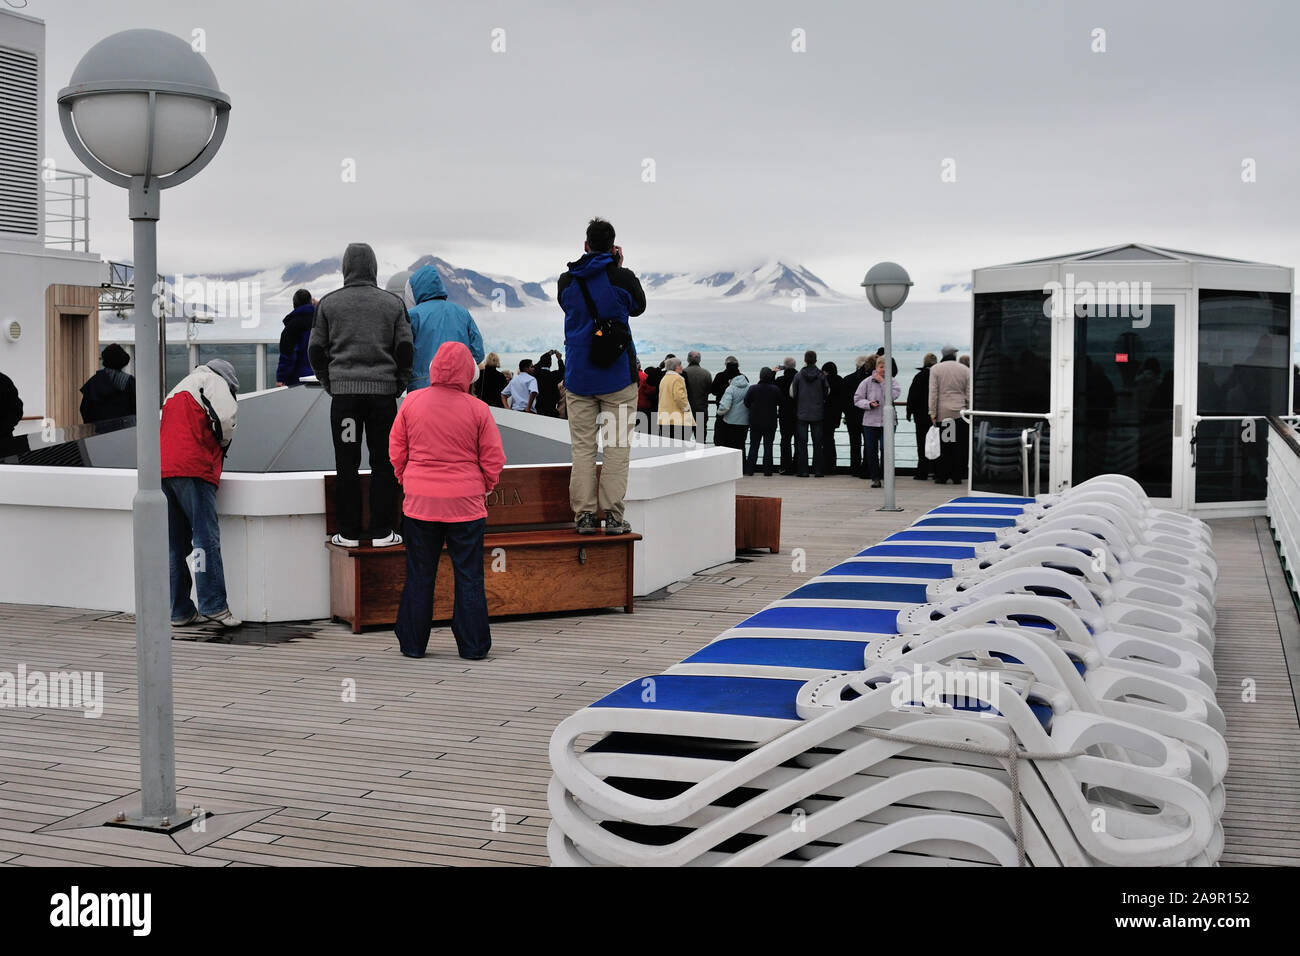 Passengers on the deck of a cruise ship sailing past the Lilliehookbreen glacier on the west coast of Spitsbergen (latitude 79.20N). Stock Photo